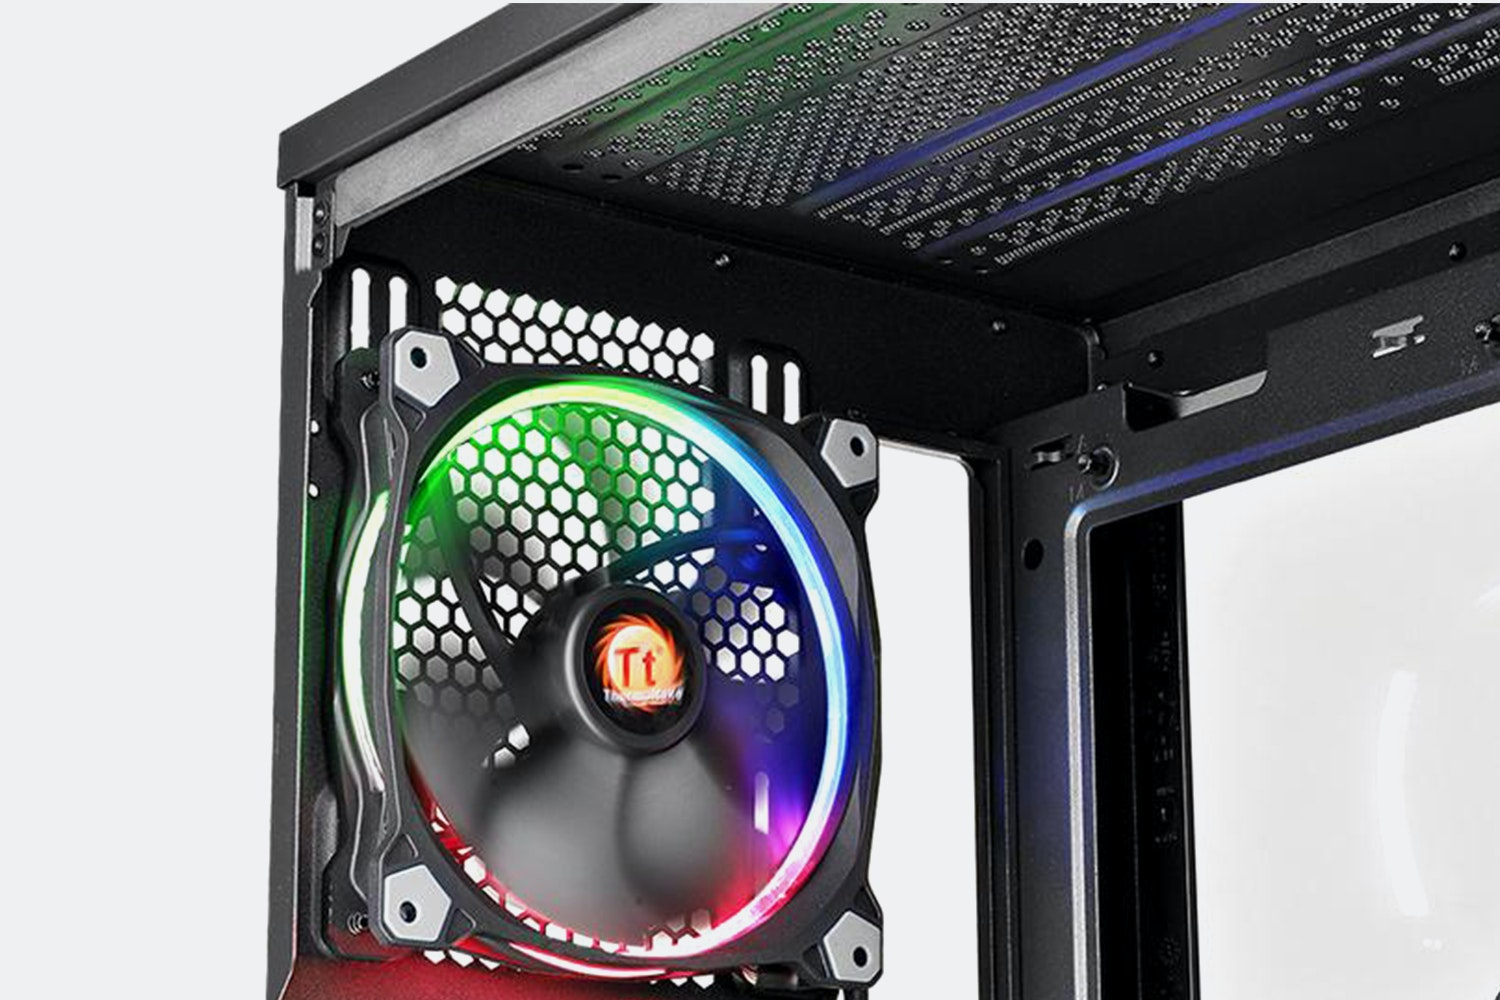 TT View 31 TG RGB Tempered Glass Mid-Tower Chassis